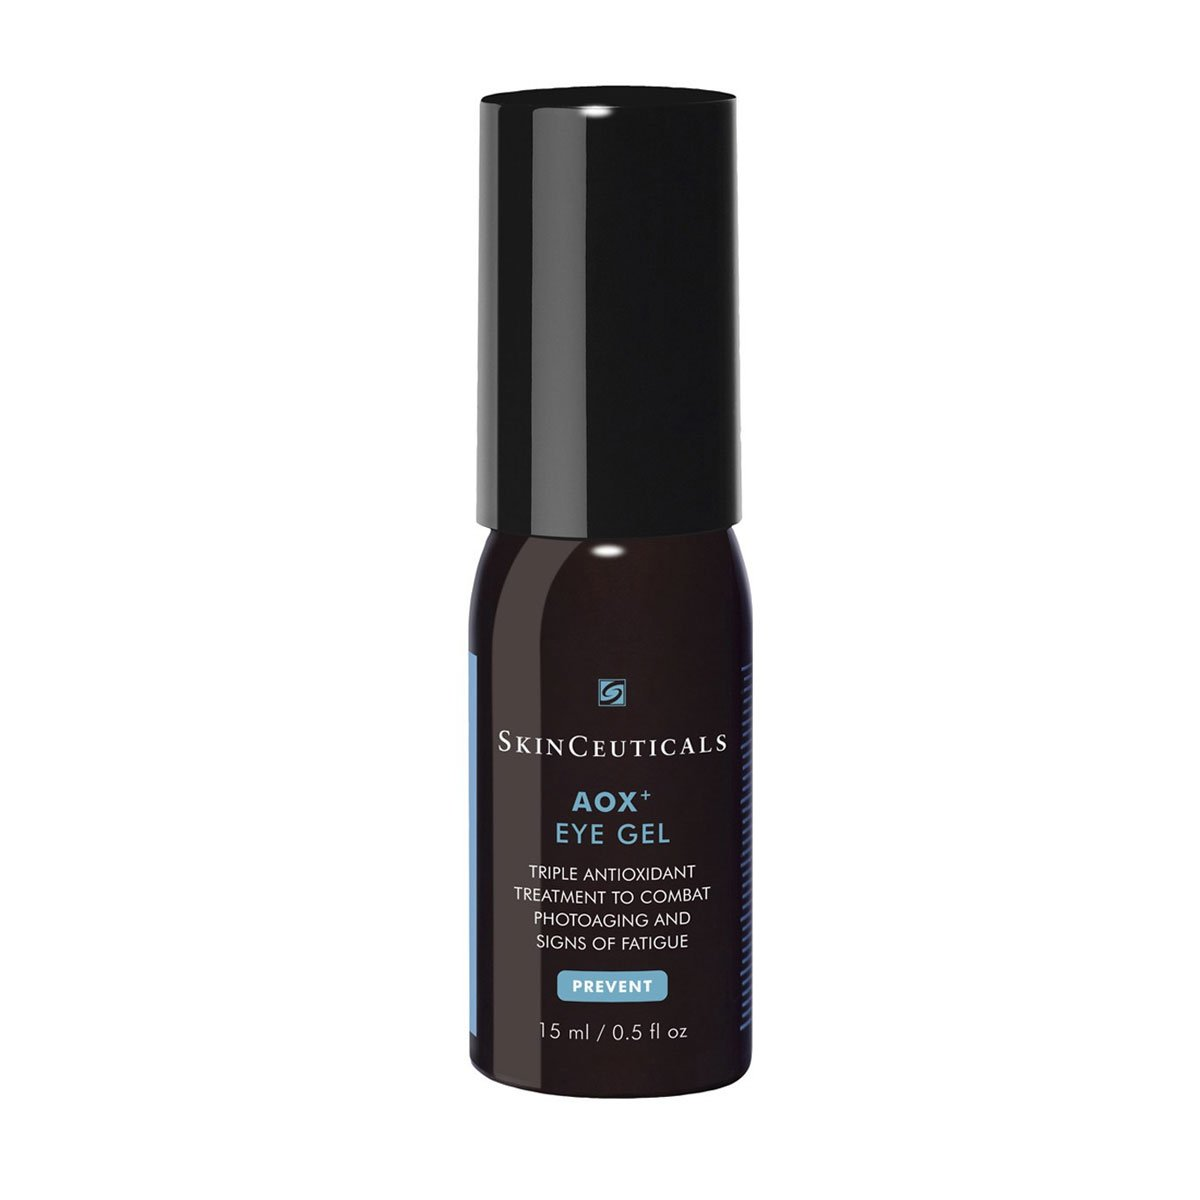 Skinceuticals Prevent Aox+ Eye Gel 15ml